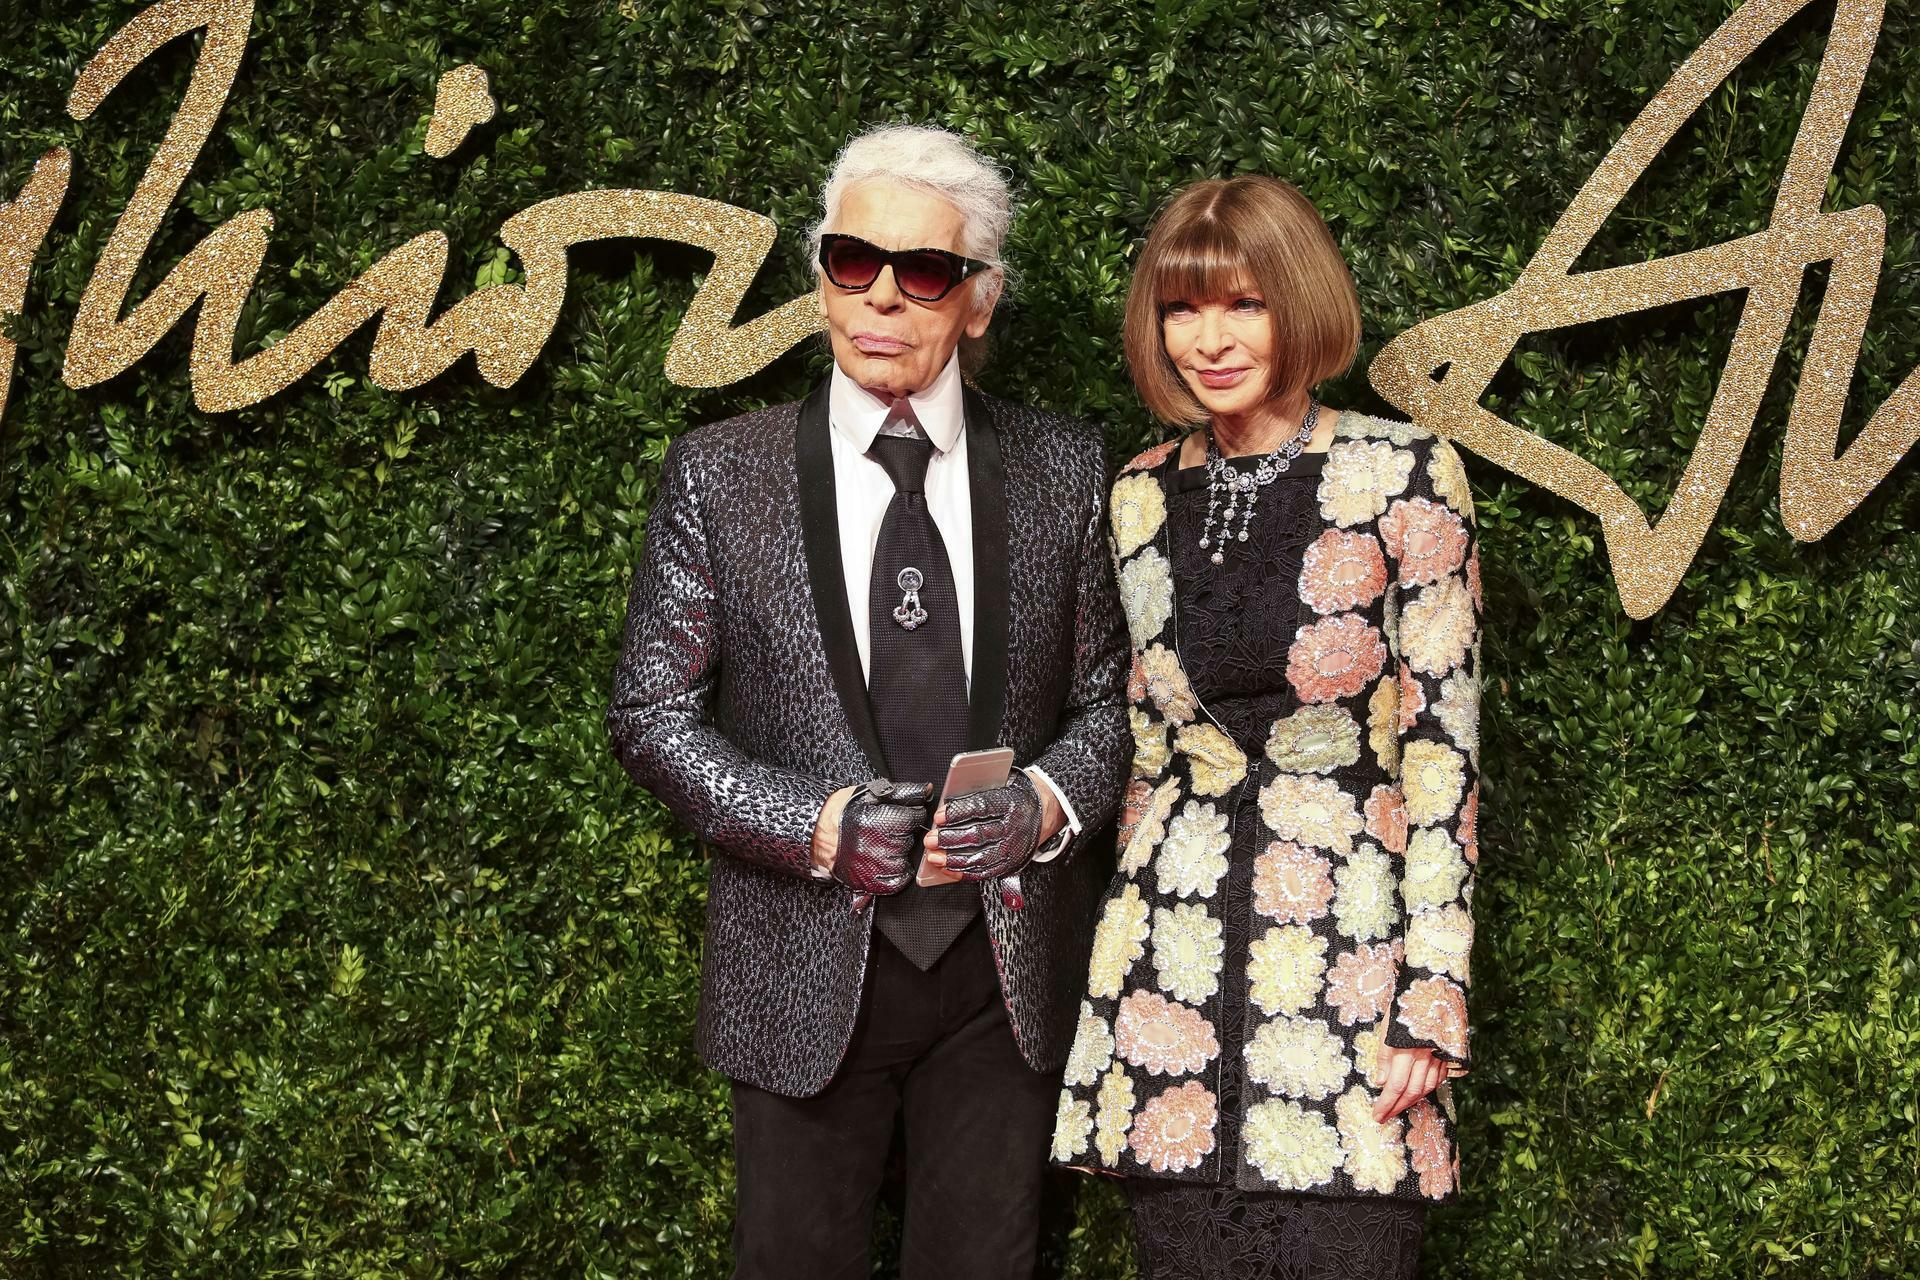 "Modedesigner Karl Lagerfeld trifft Anna Wintour, Chefredakteurin der amerikanischen Zeitschrift ""Vogue"" auf dem roten Teppich der ""British Fashion Awards"" im Theatergebäude ""London Coliseum"". Quelle: AFP"